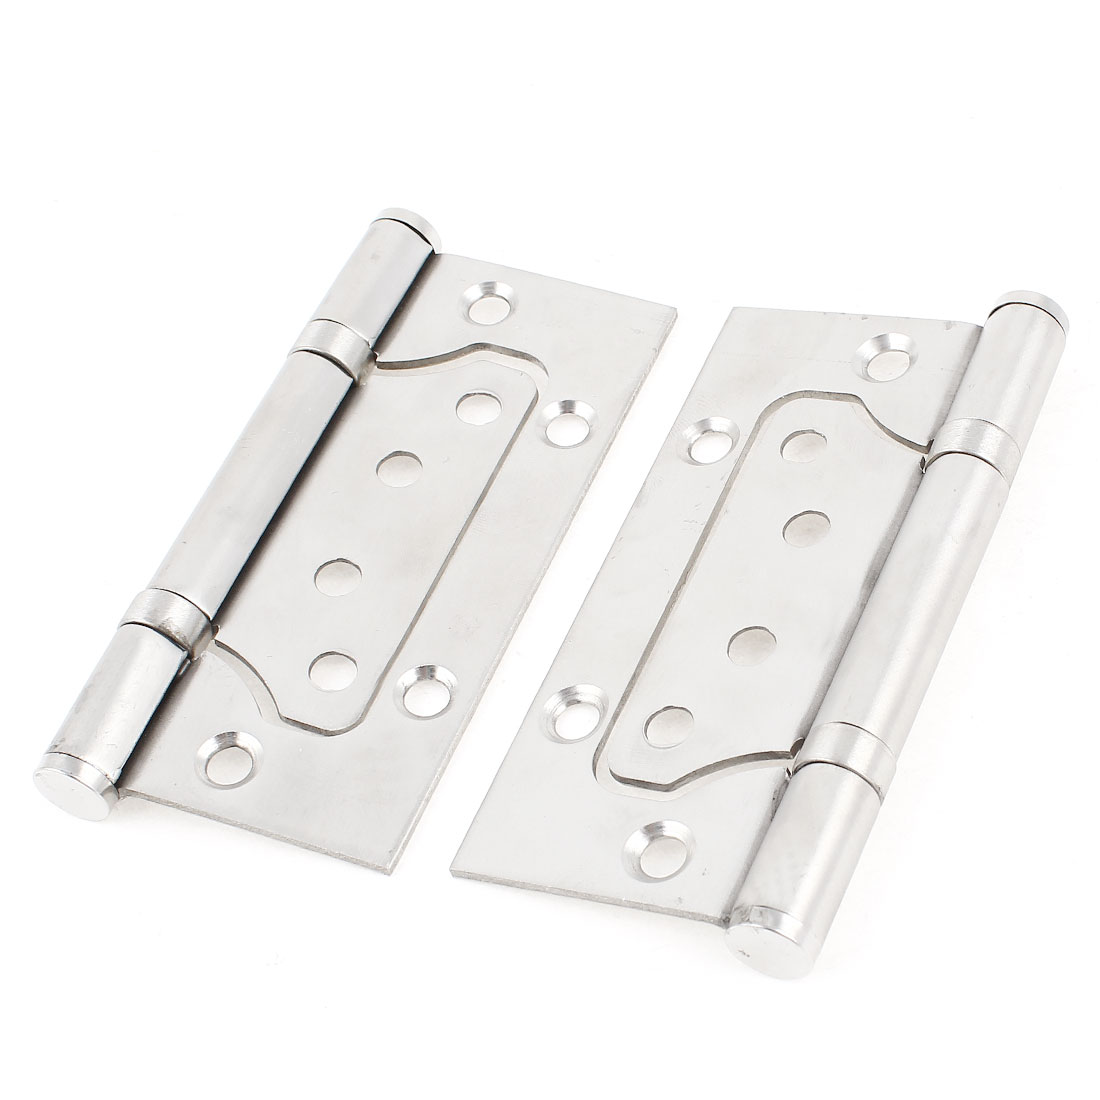 "2 Pcs Omnidirectional Rotatable Closet Door Hinge 4"" Long Silver Tone"